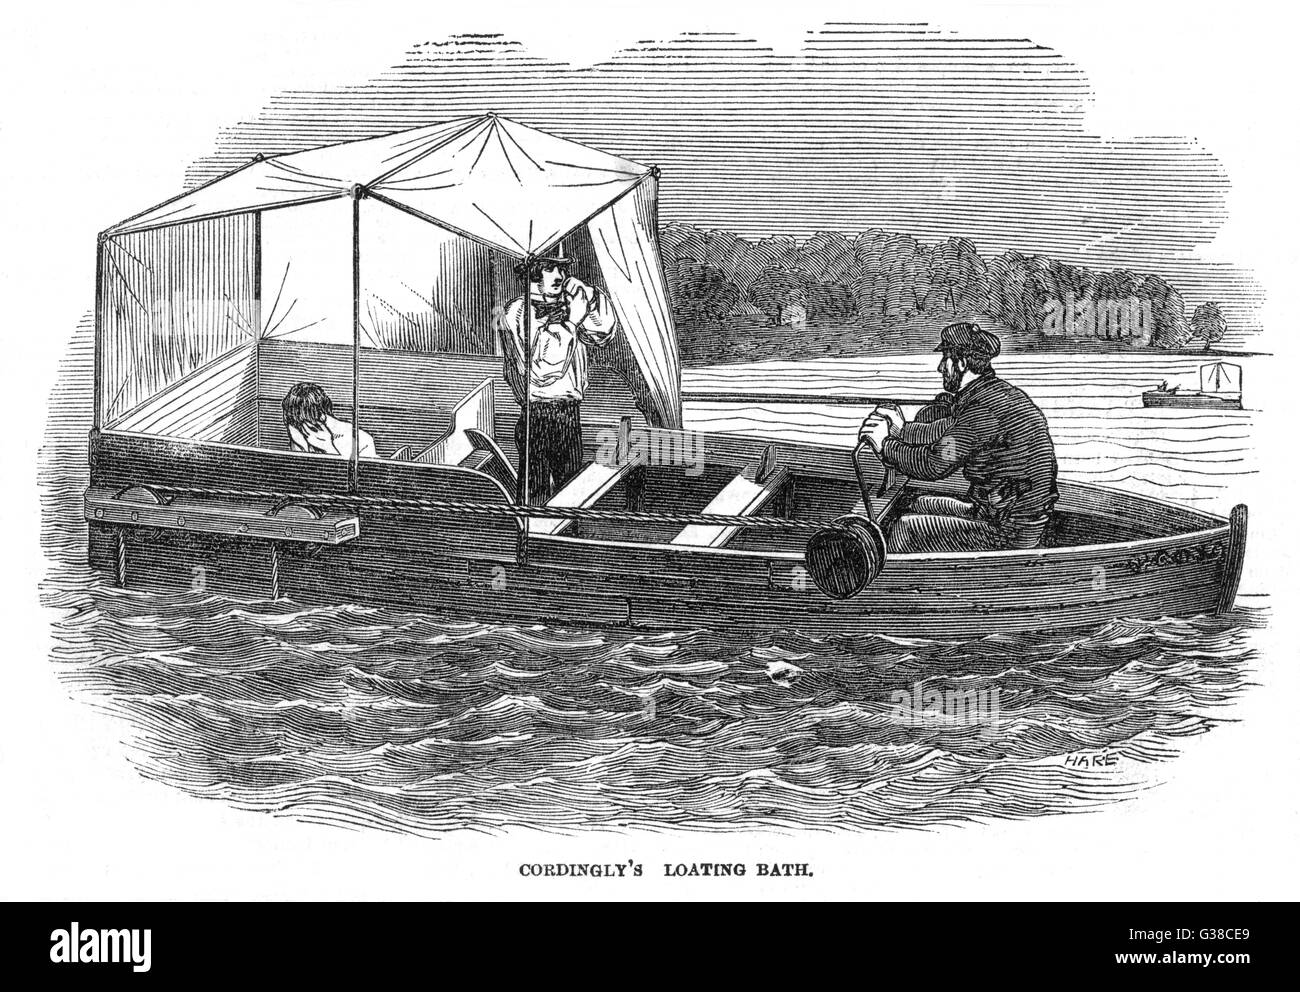 Cordingly's floating bath  which appears to be floating  in open water.        Date: 1850 - Stock Image